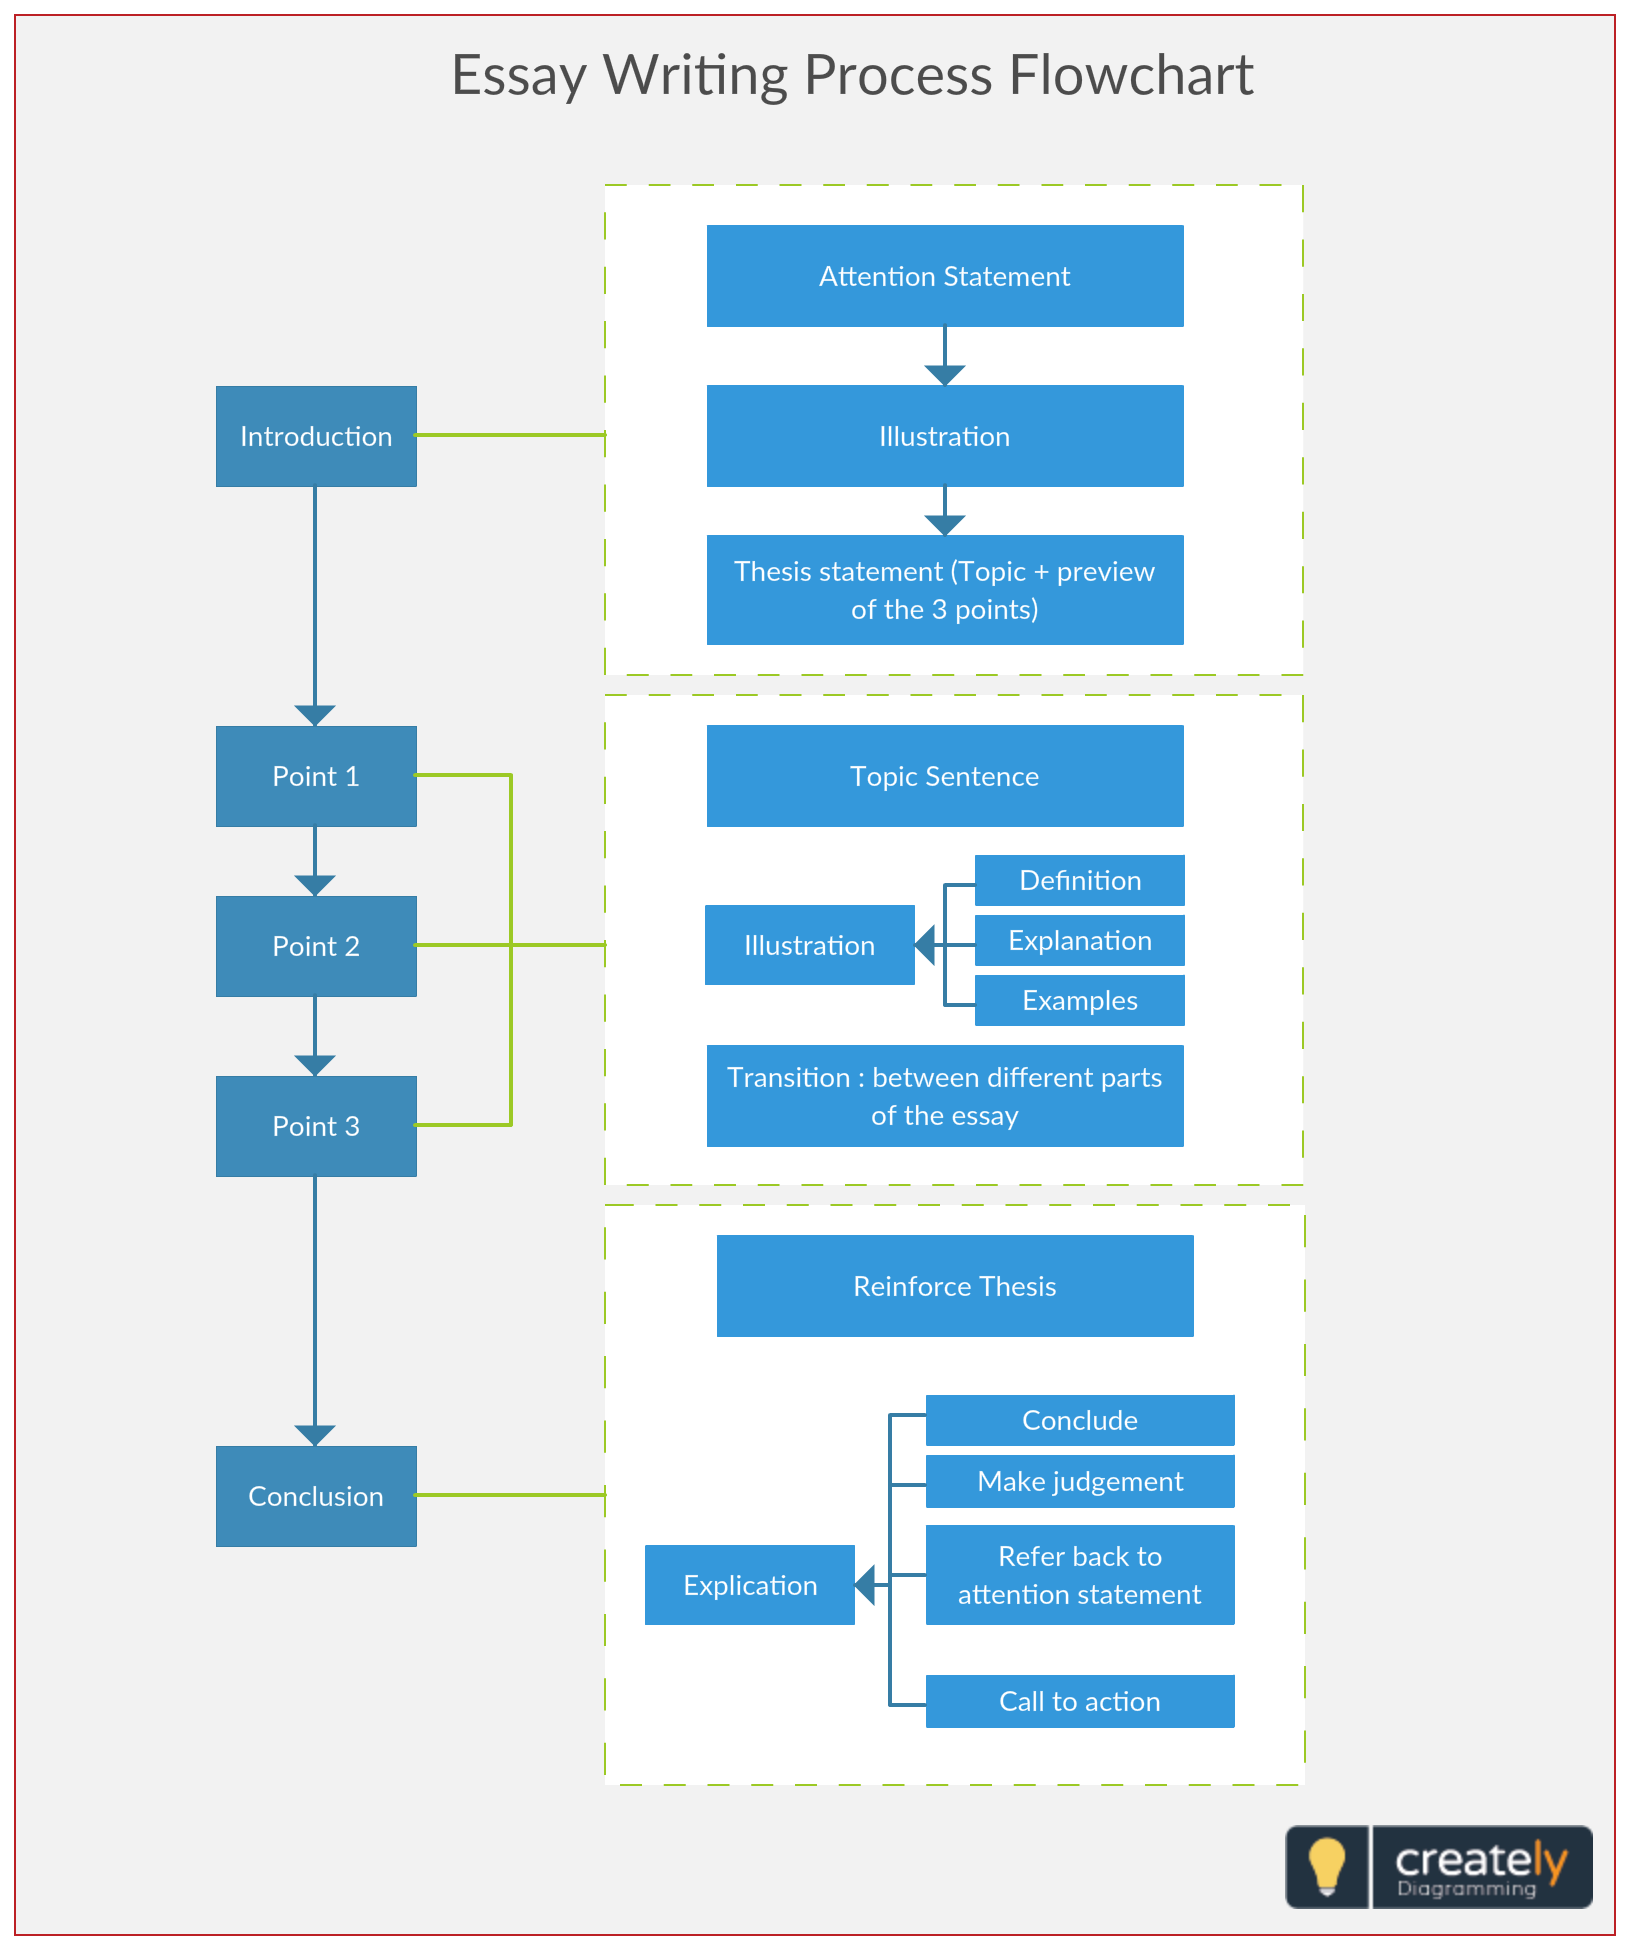 hight resolution of essay writing process flowchart the flowchart below shows the process involved in writing a formal